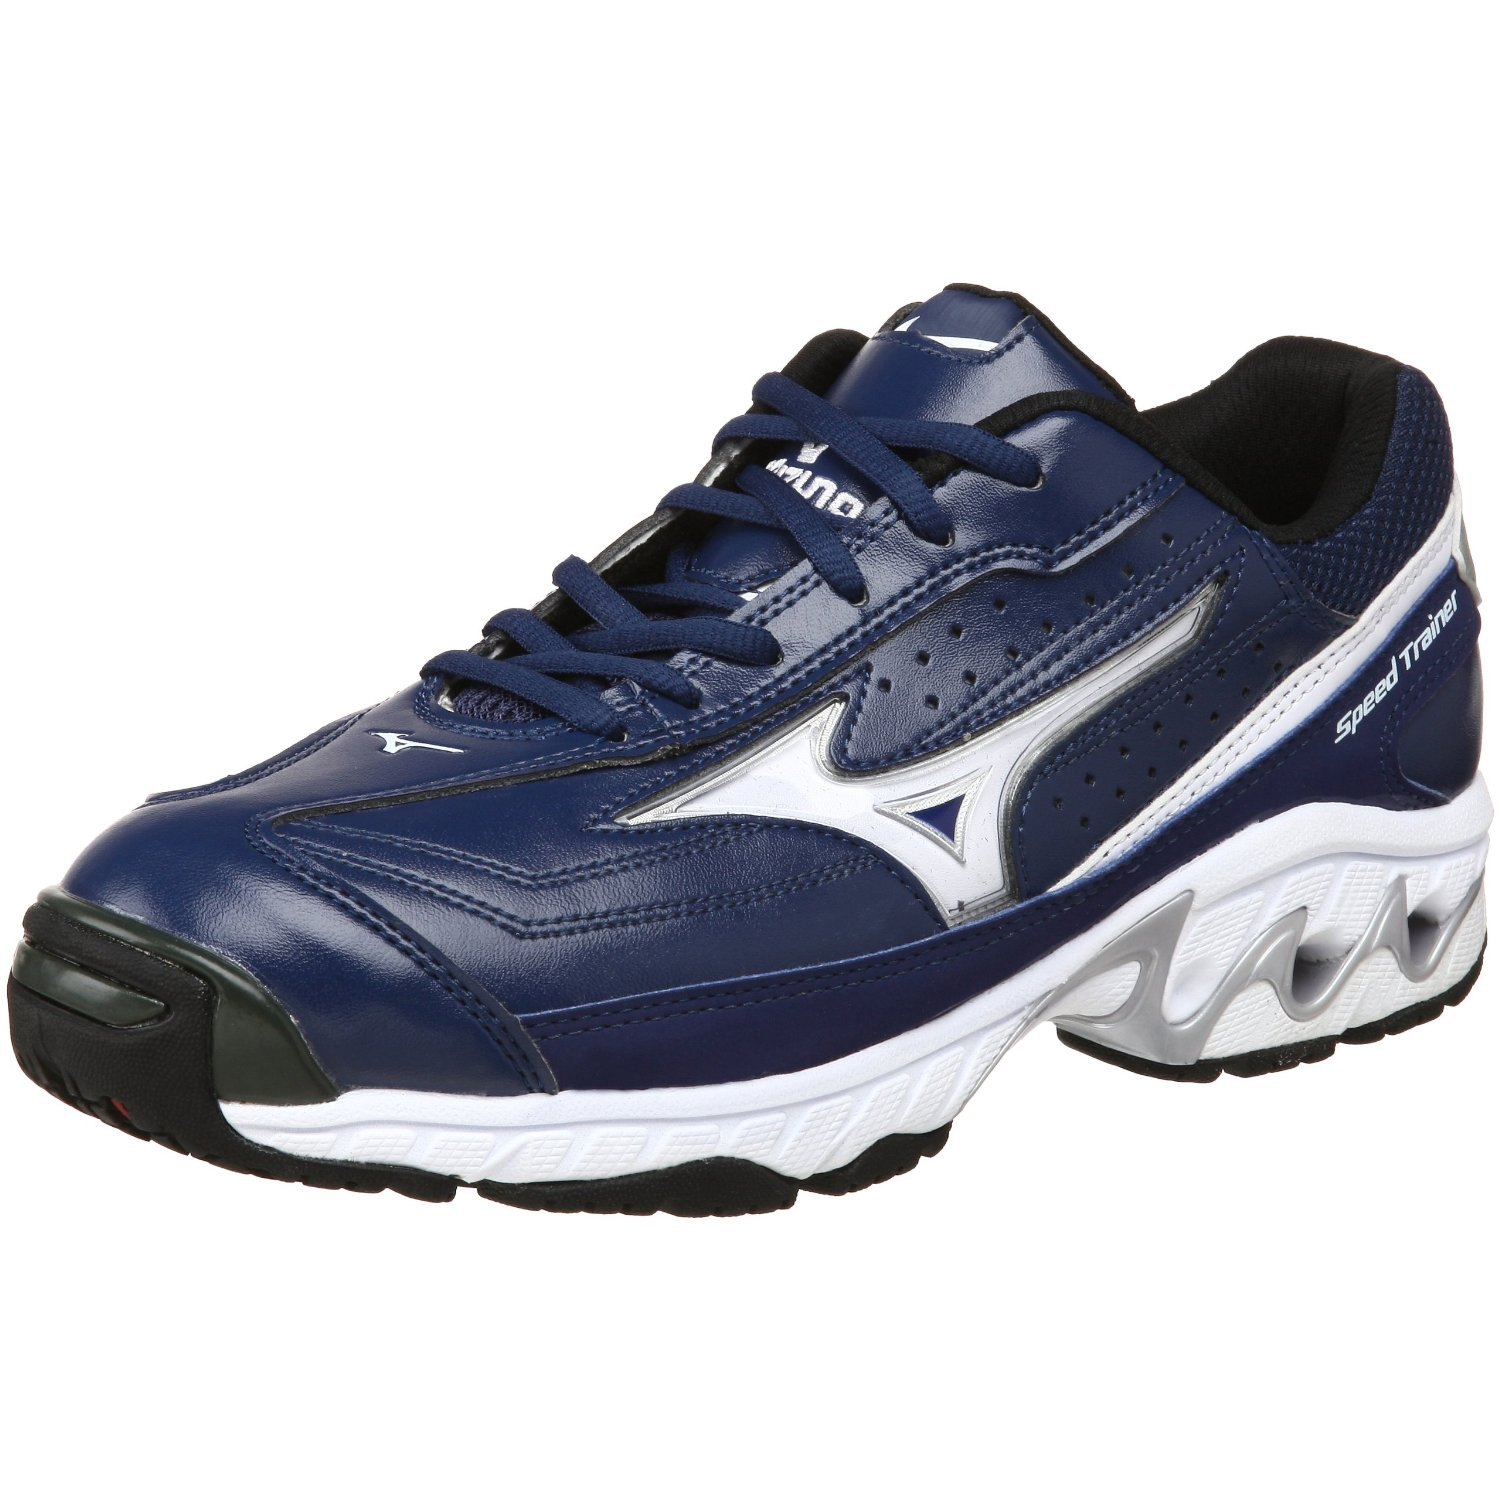 Mizuno Speed Trainer G3 Switch Training Shoe In Blue For